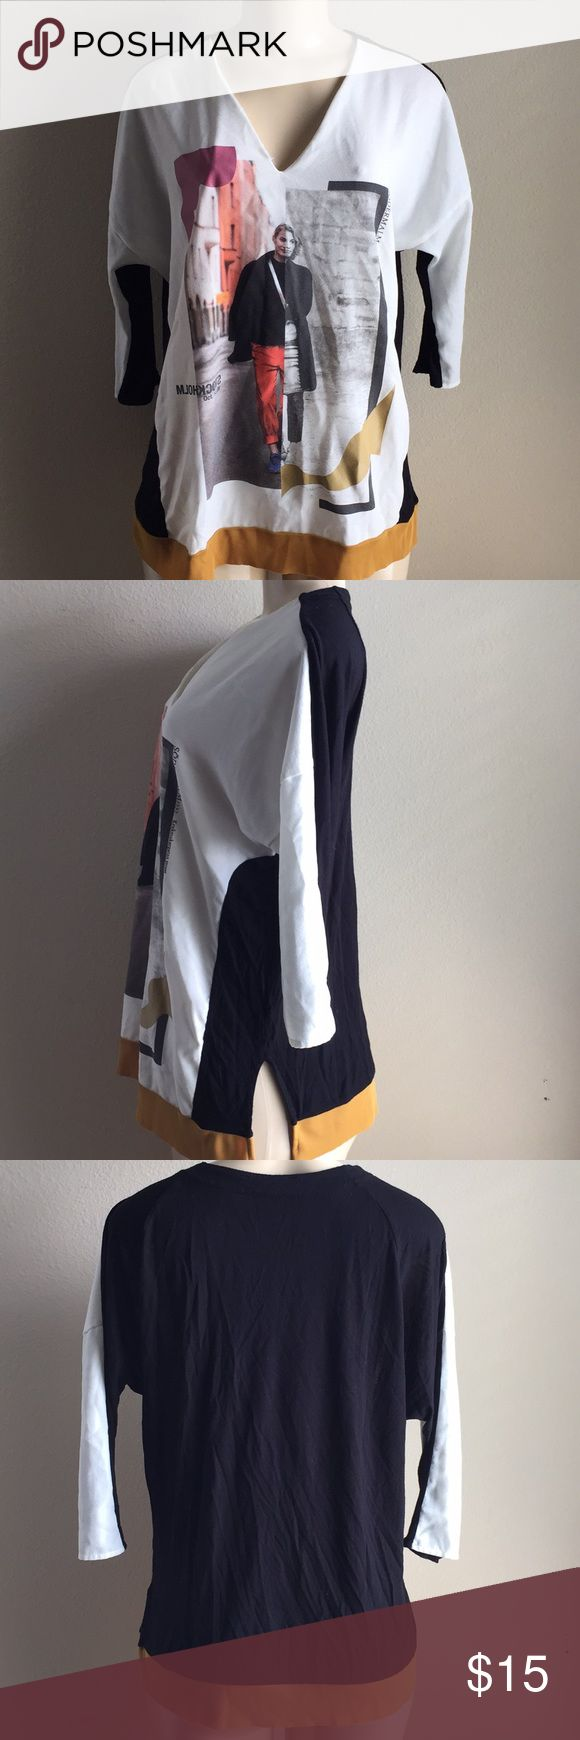 ZARA Stockholm Abstract Print Shirt White, black and gold color block fashion print shirt. V-neckline. Side slots. 3/4 Sleeve. No stains. Neckline has a minor unnoticeable tear. Zara Tops Blouses